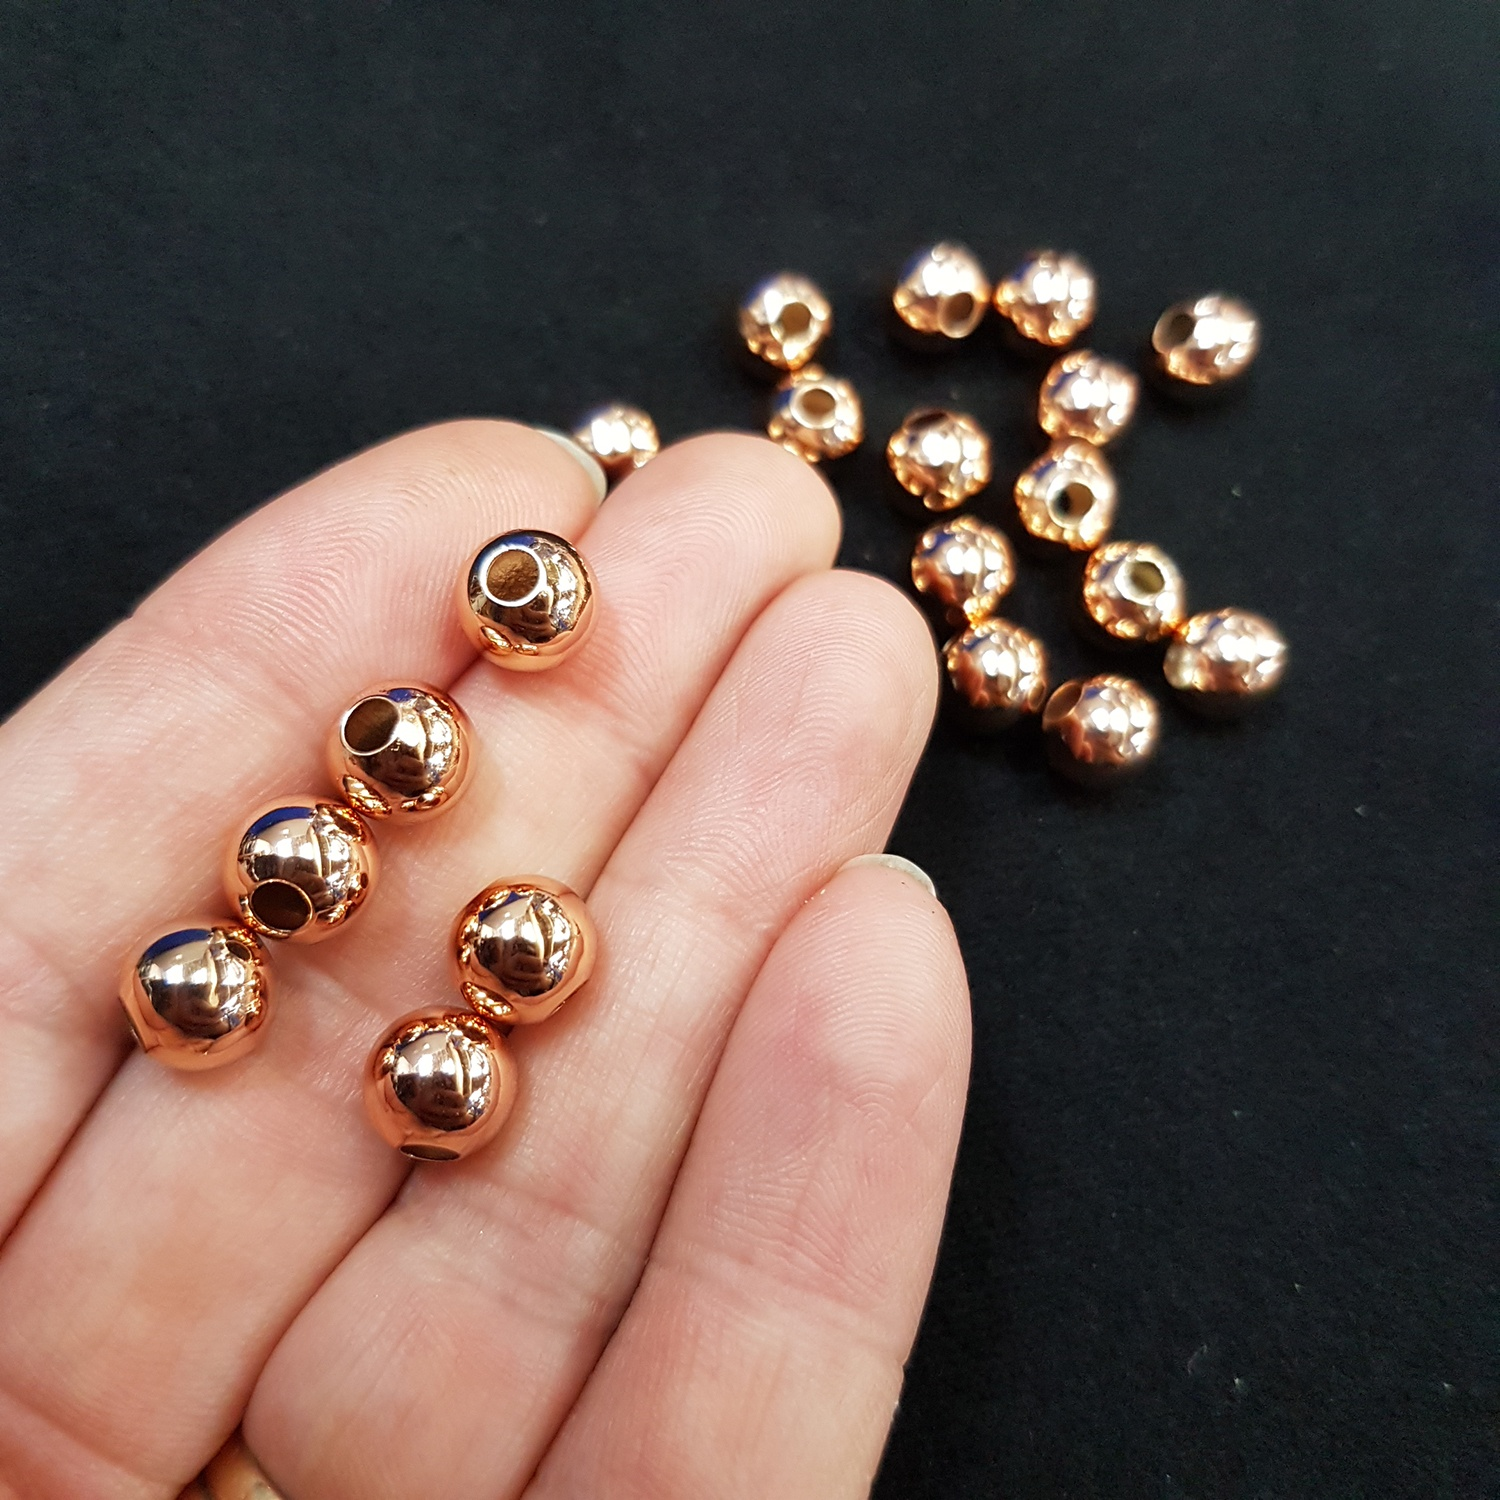 20 Pcs X 8mm Tarnish Resistant Big Mouth Spacer Rose Gold Findings Spacers Tarnish Resistant Chain And Findings Findings 20 Pcs X 8mm Tarnish Resistant Big Mouth Spacer Rose Gold